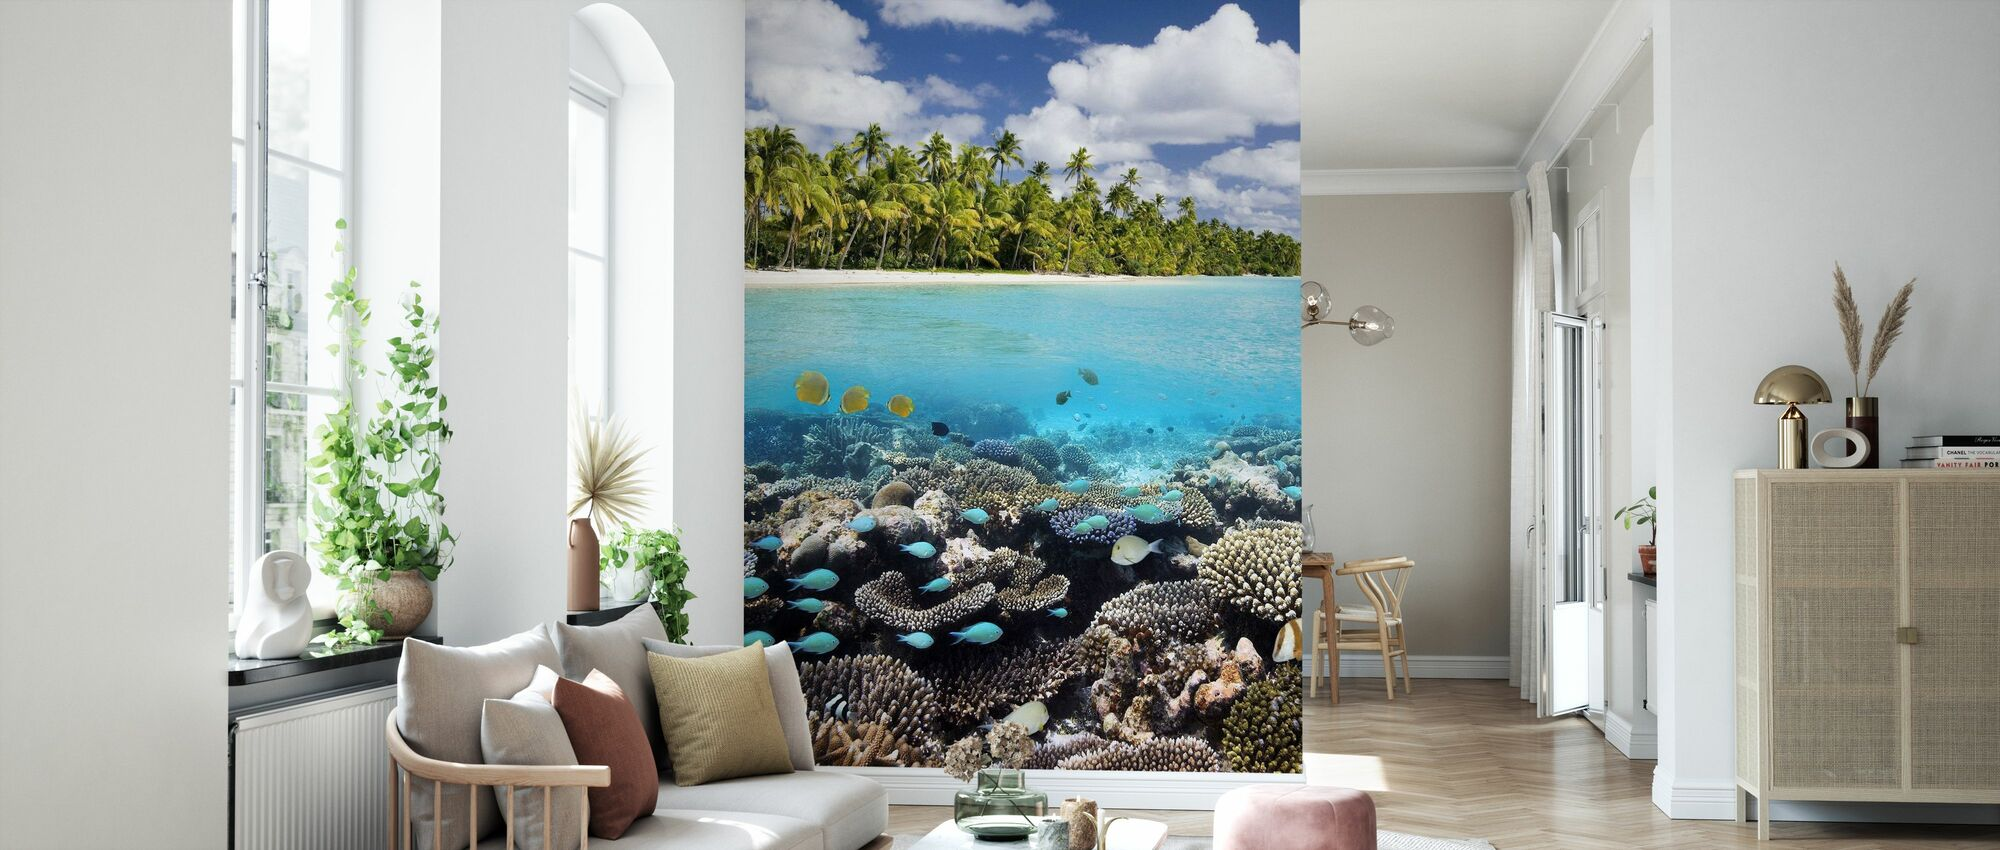 Under and above Water - Wallpaper - Living Room